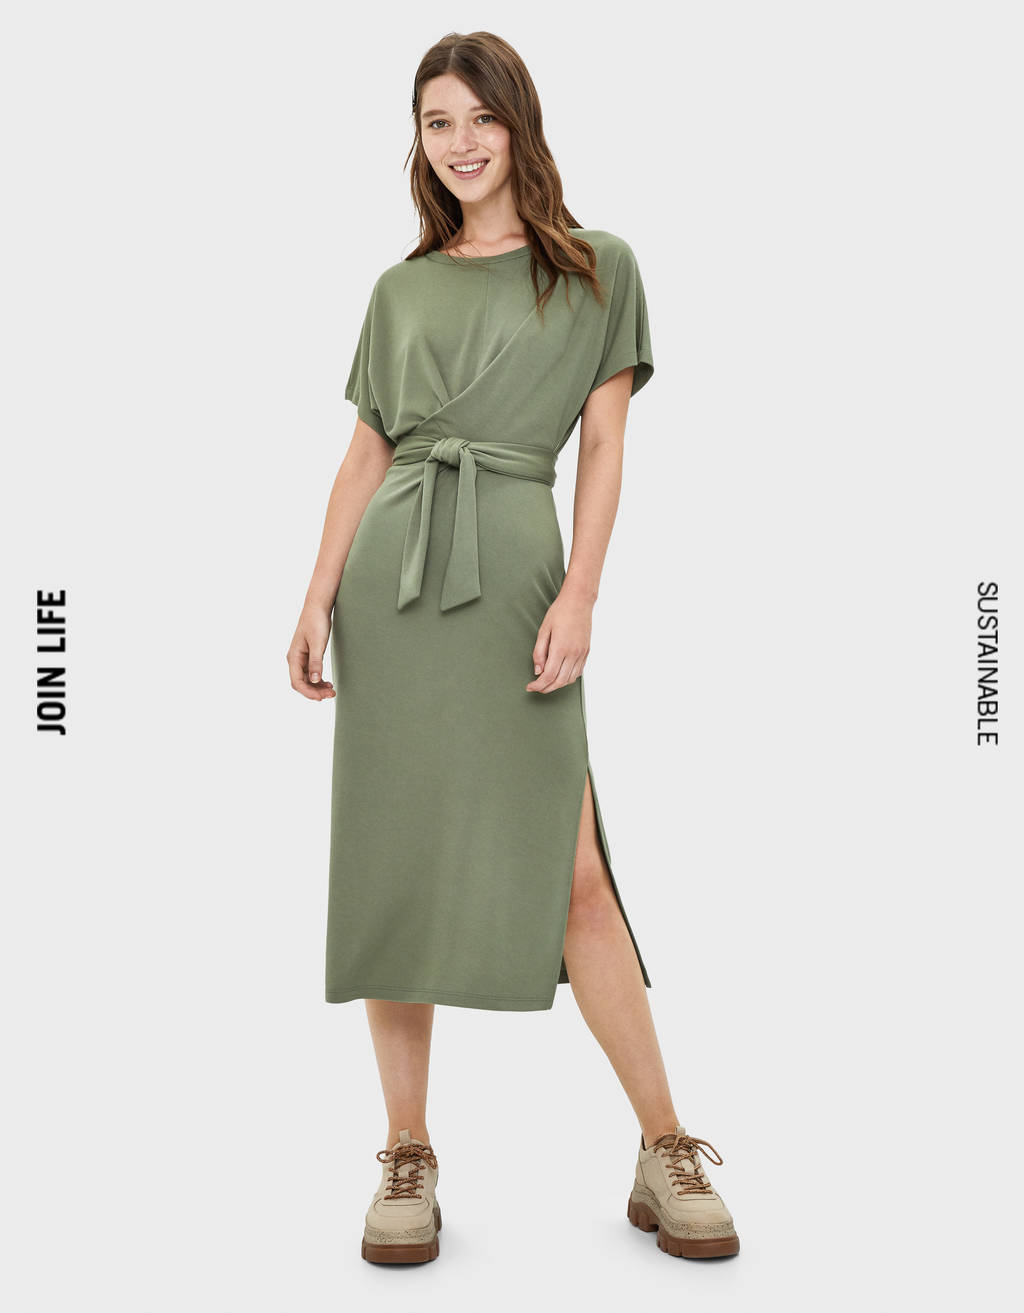 Midi dress with tie detail